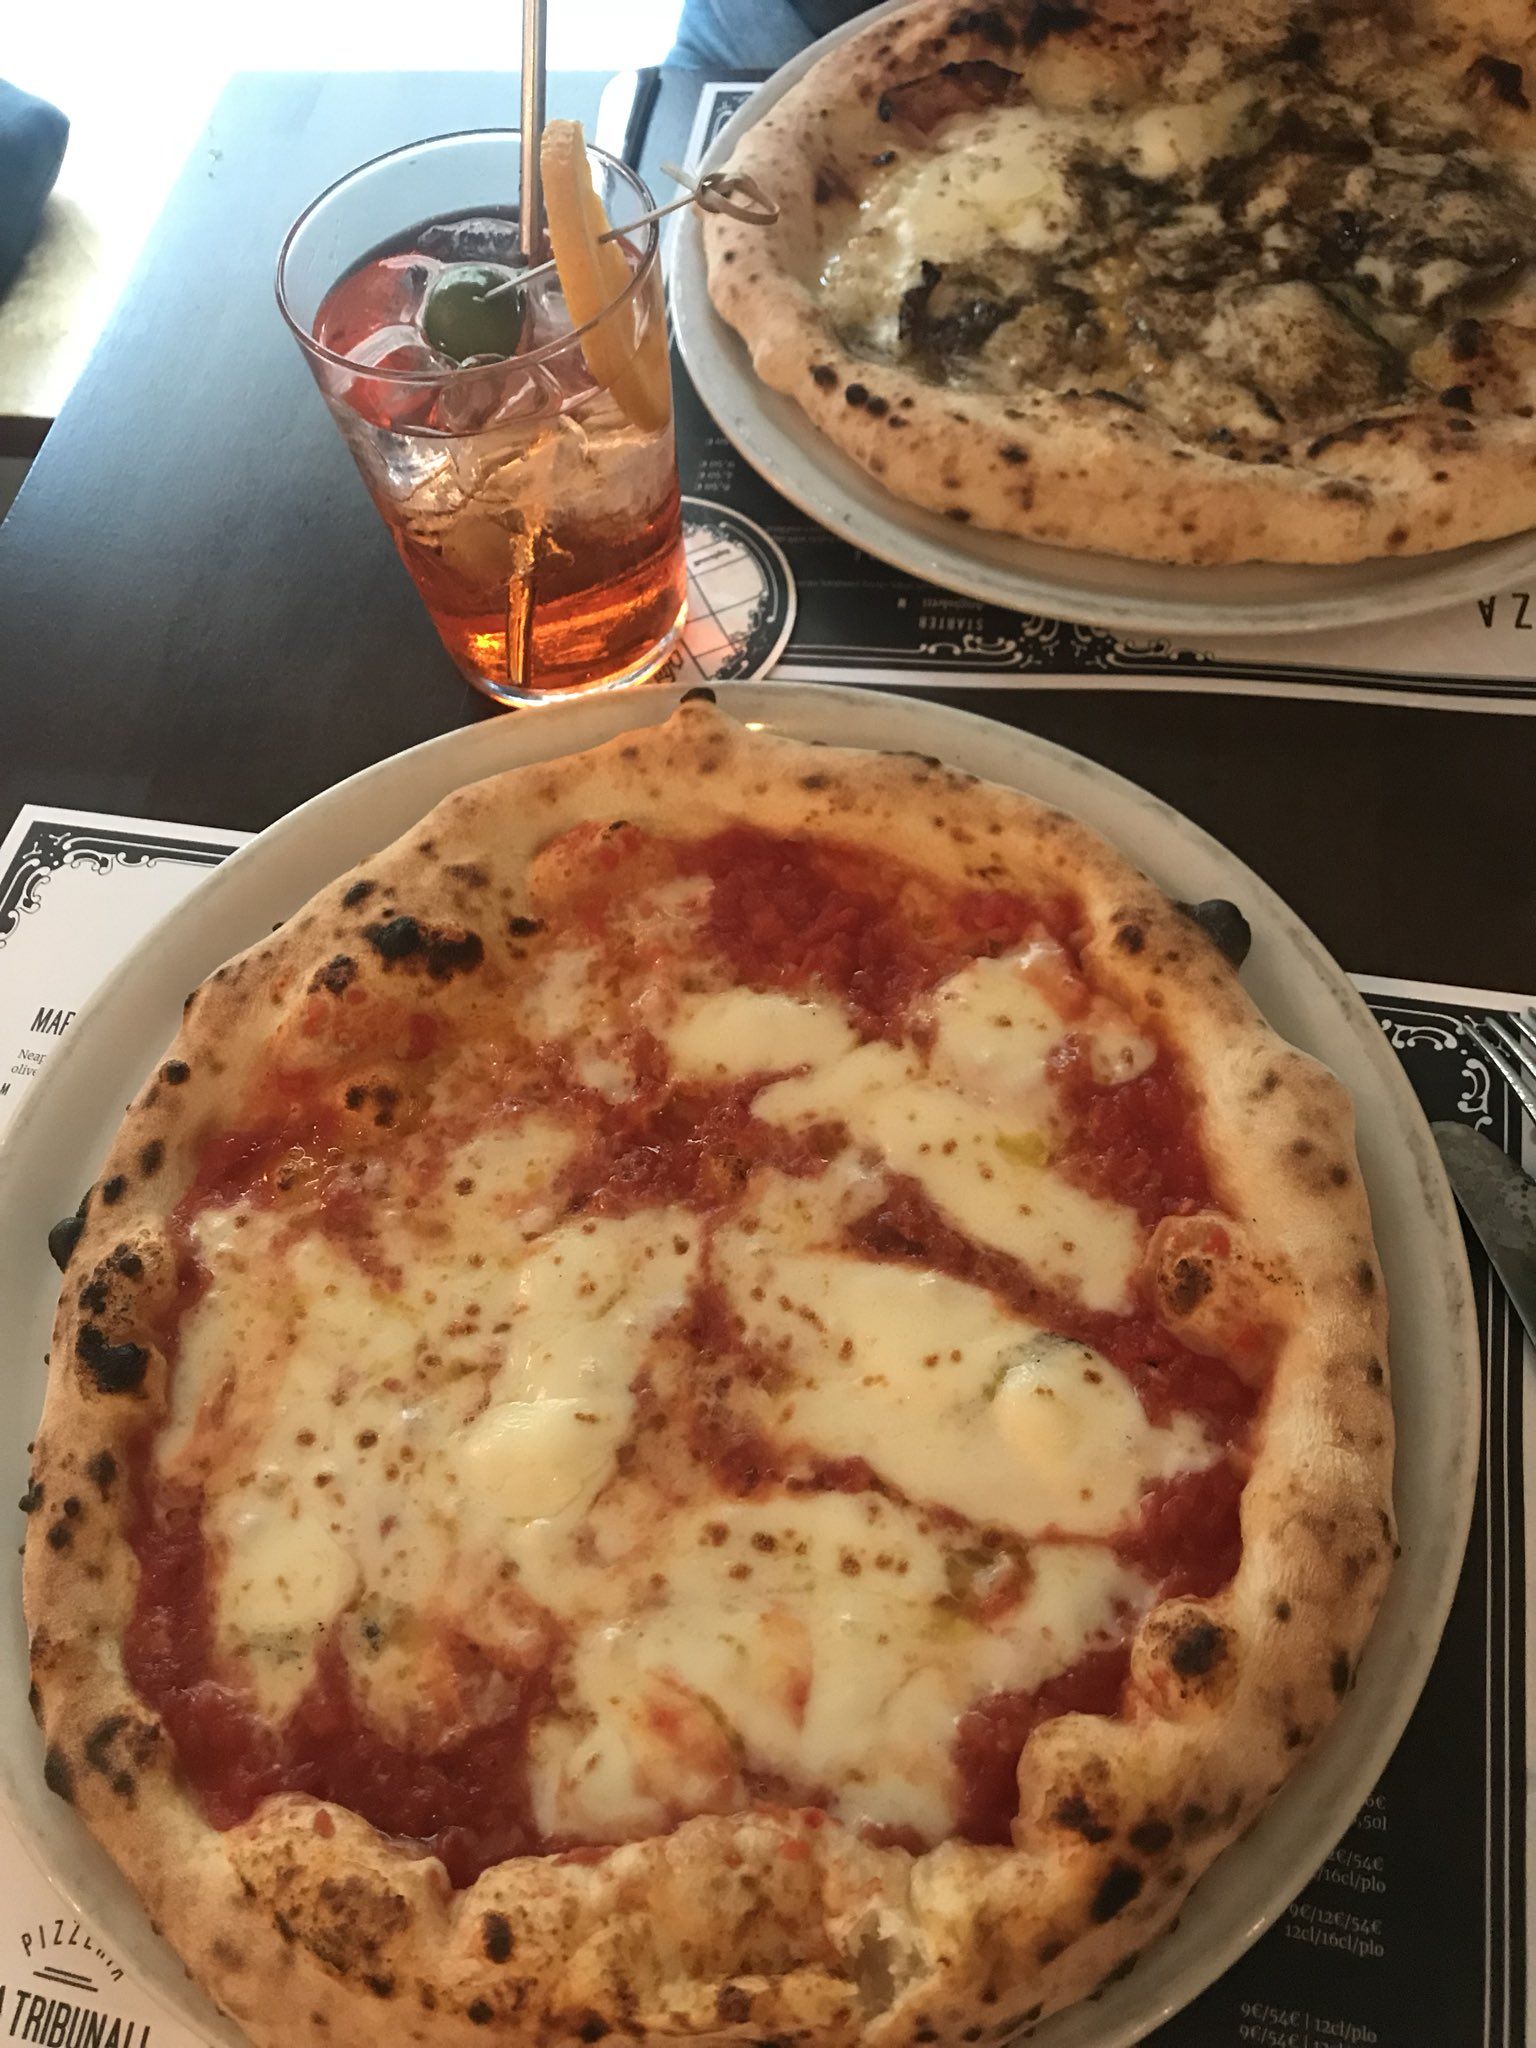 Came to Helsinki, ordered Neapolitan pizza. I'm doing it wrong. Hi, I'm Kate. https://t.co/BXz7EzJft0